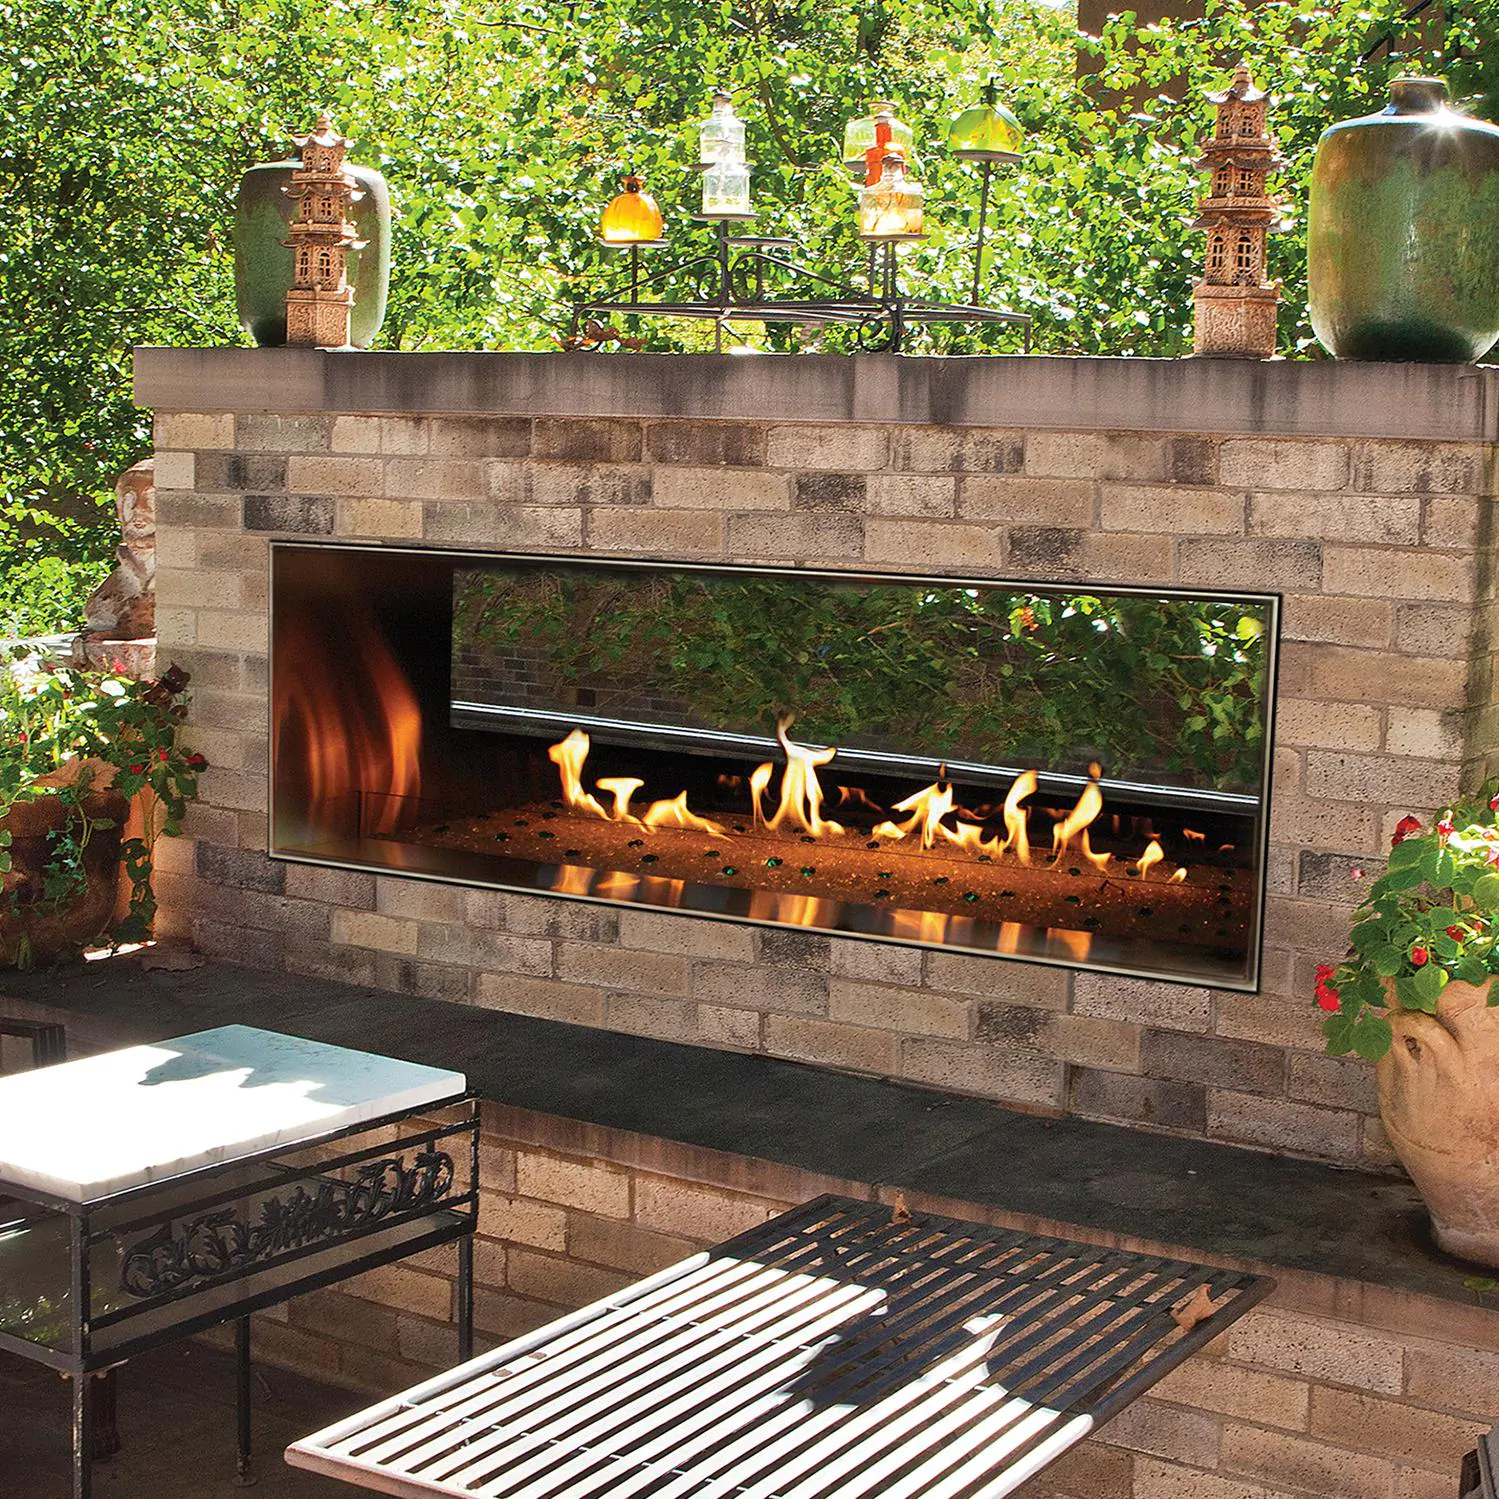 """White Mountain Hearth By Empire Carol Rose 60"""" Vent Free Propane Gas Outdoor Linear See-Through Fireplace W/ Manual Electronic Ignition & LED Light System - OLL60SP12SP"""